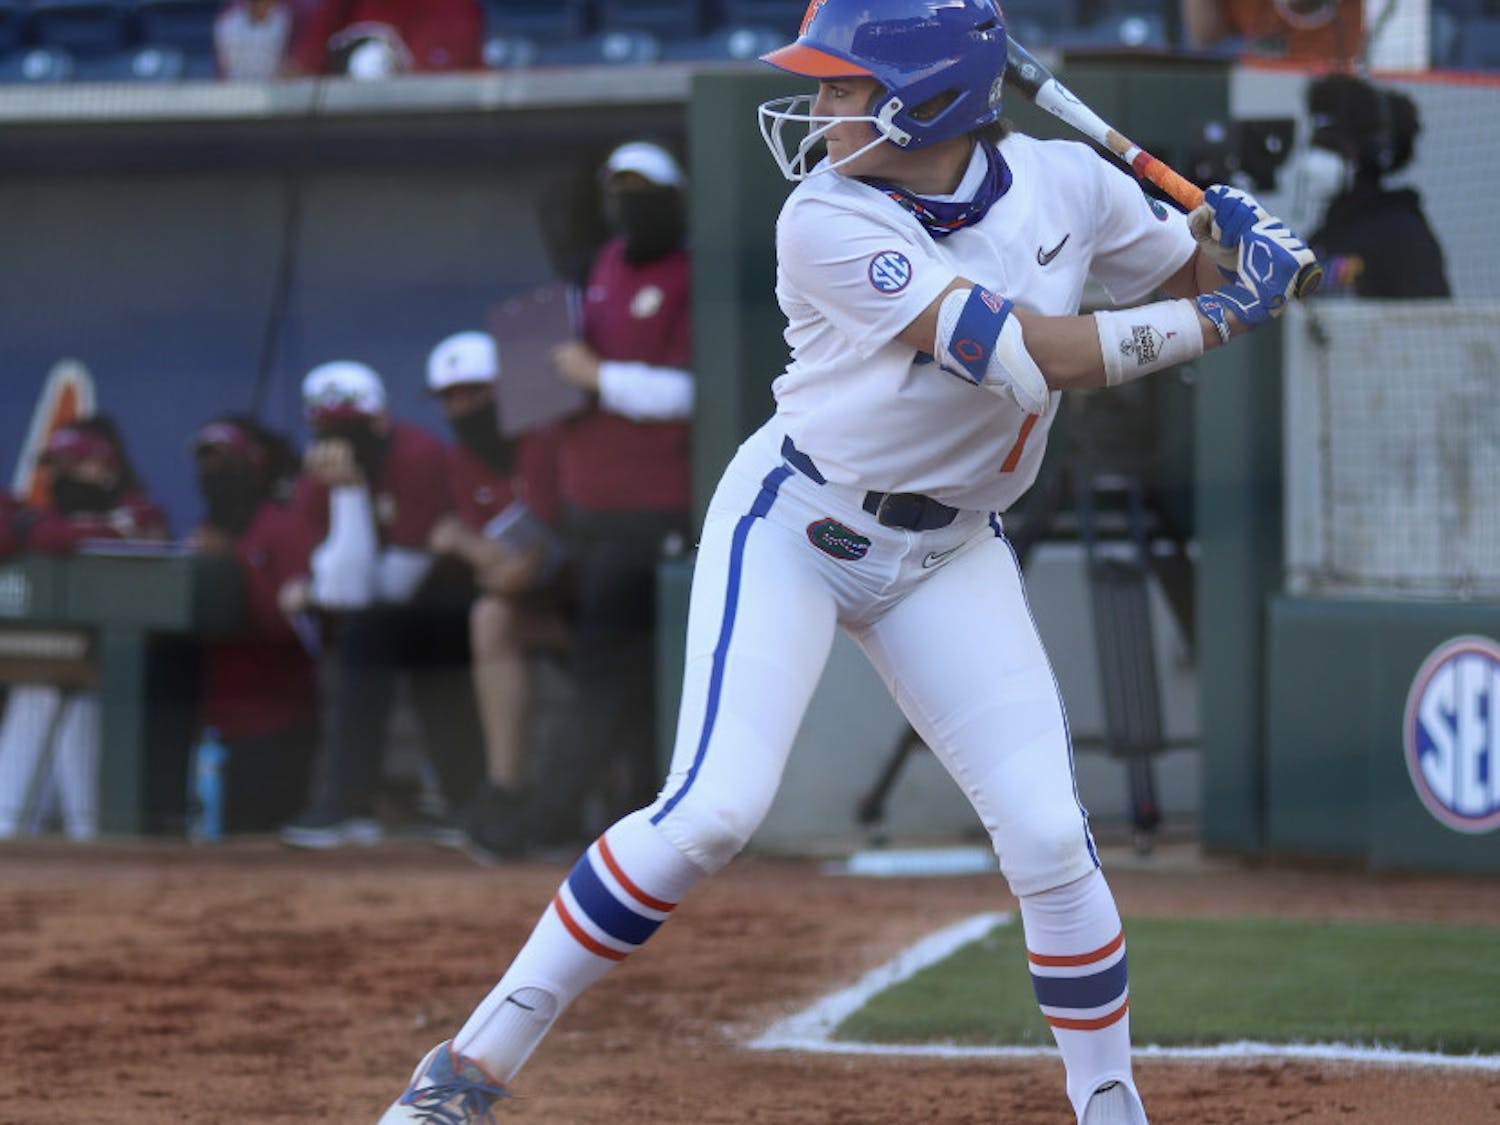 Infielder Hannah Adams prepares her swing March 3 against Florida State. Adams extended her career-long hitting streak to 11 games Saturday.